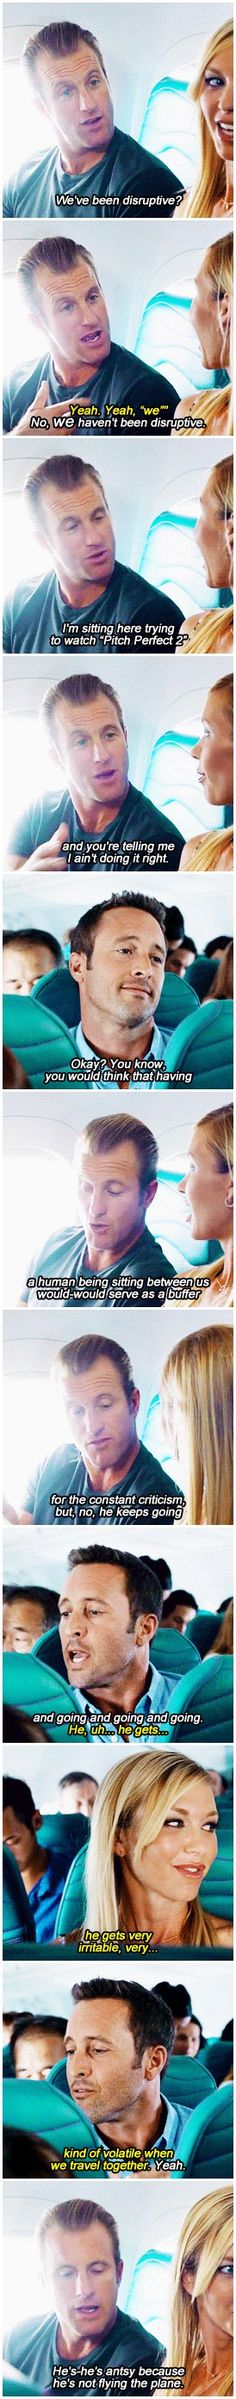 I'm Steve, by the way. And the bundle of joy to your right is Danny. # MCDANNO #…